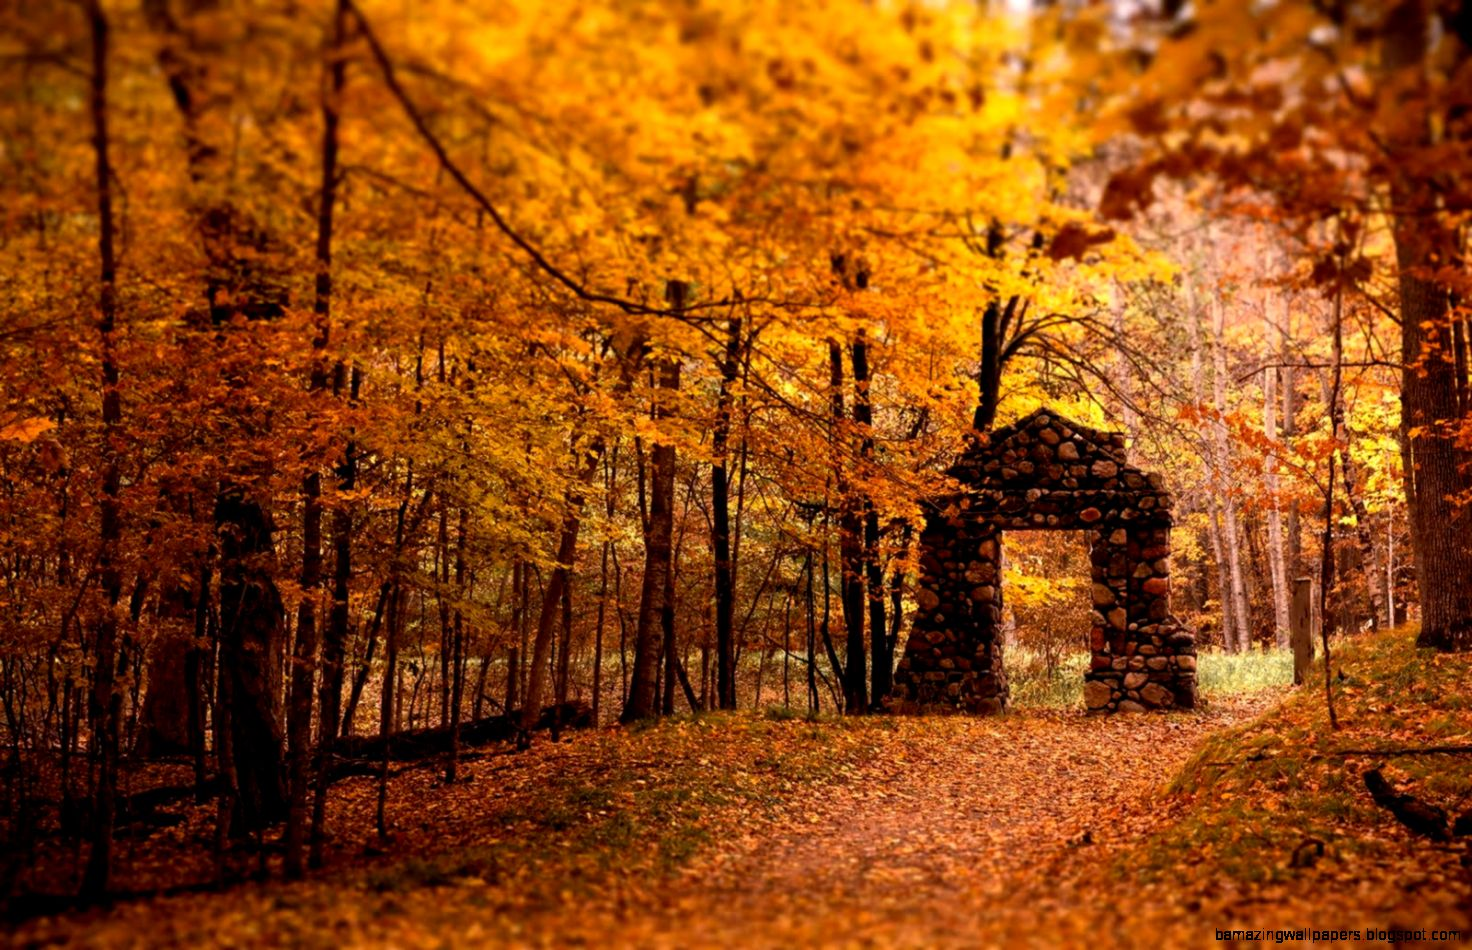 Autumn HD Widescreen Wallpaper   WallpaperSafari